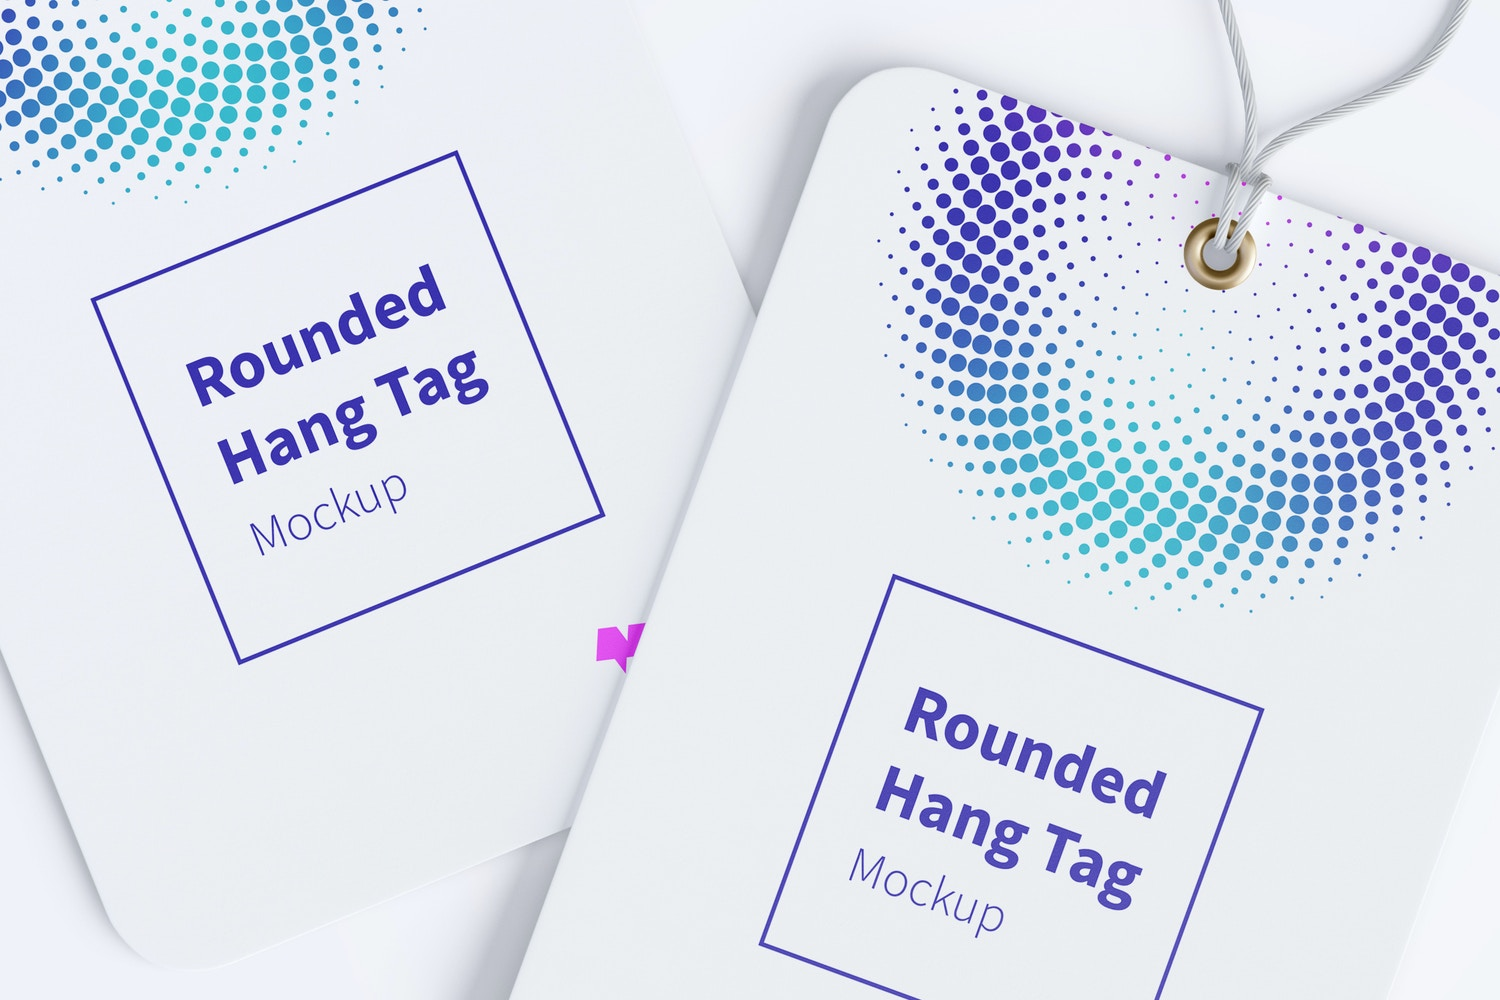 Rounded Hang Tags Mockup with String, Two-sided